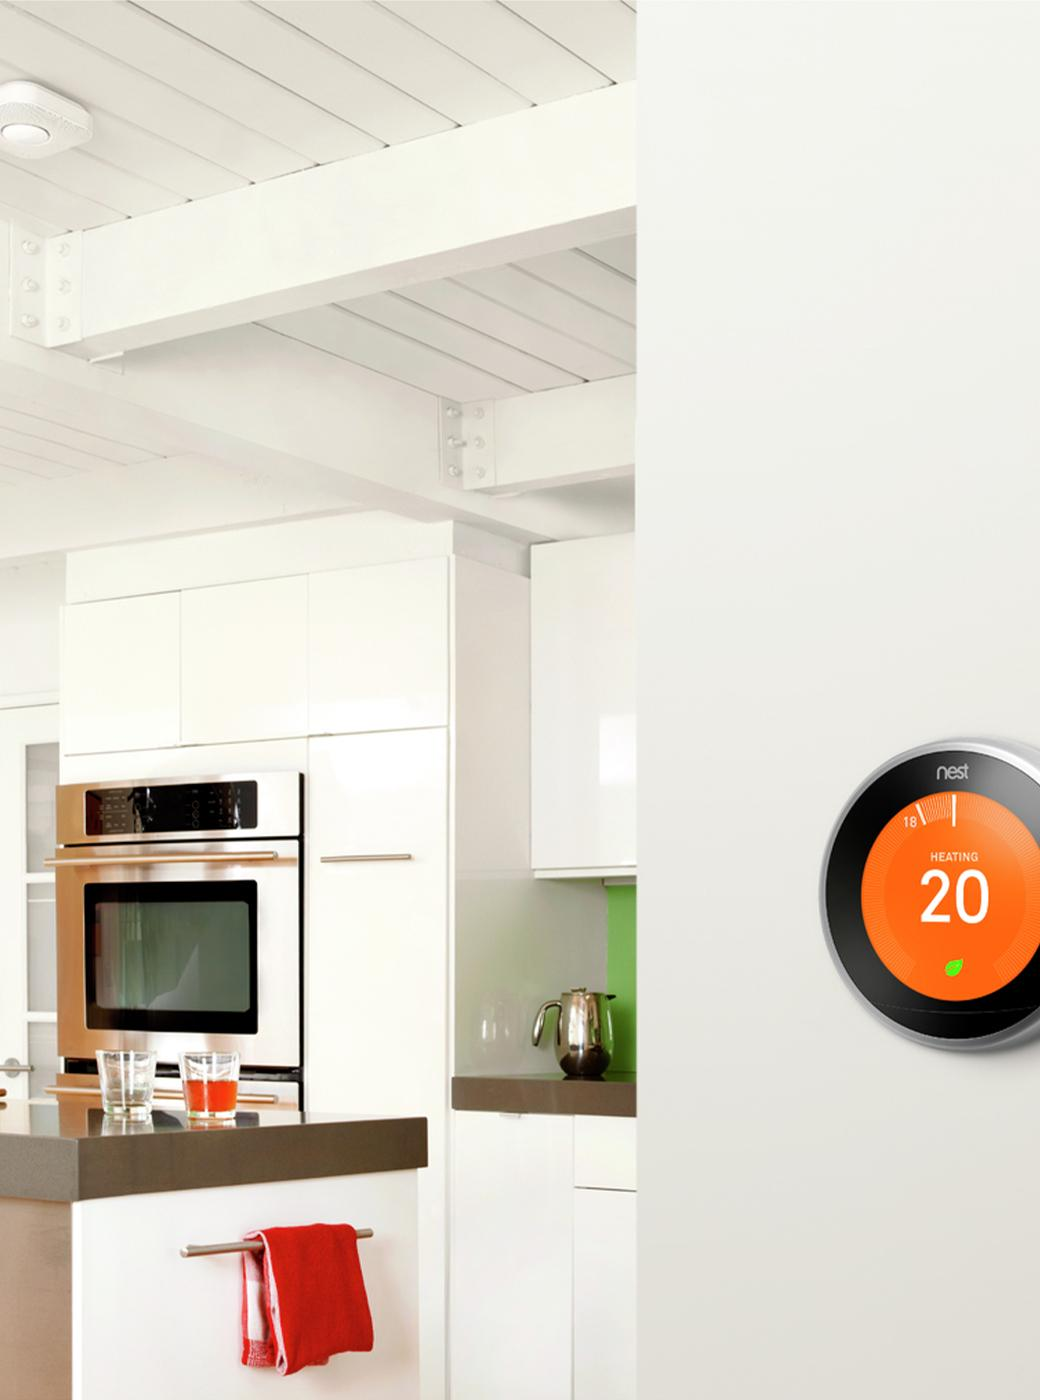 Smart heating and smart plugs